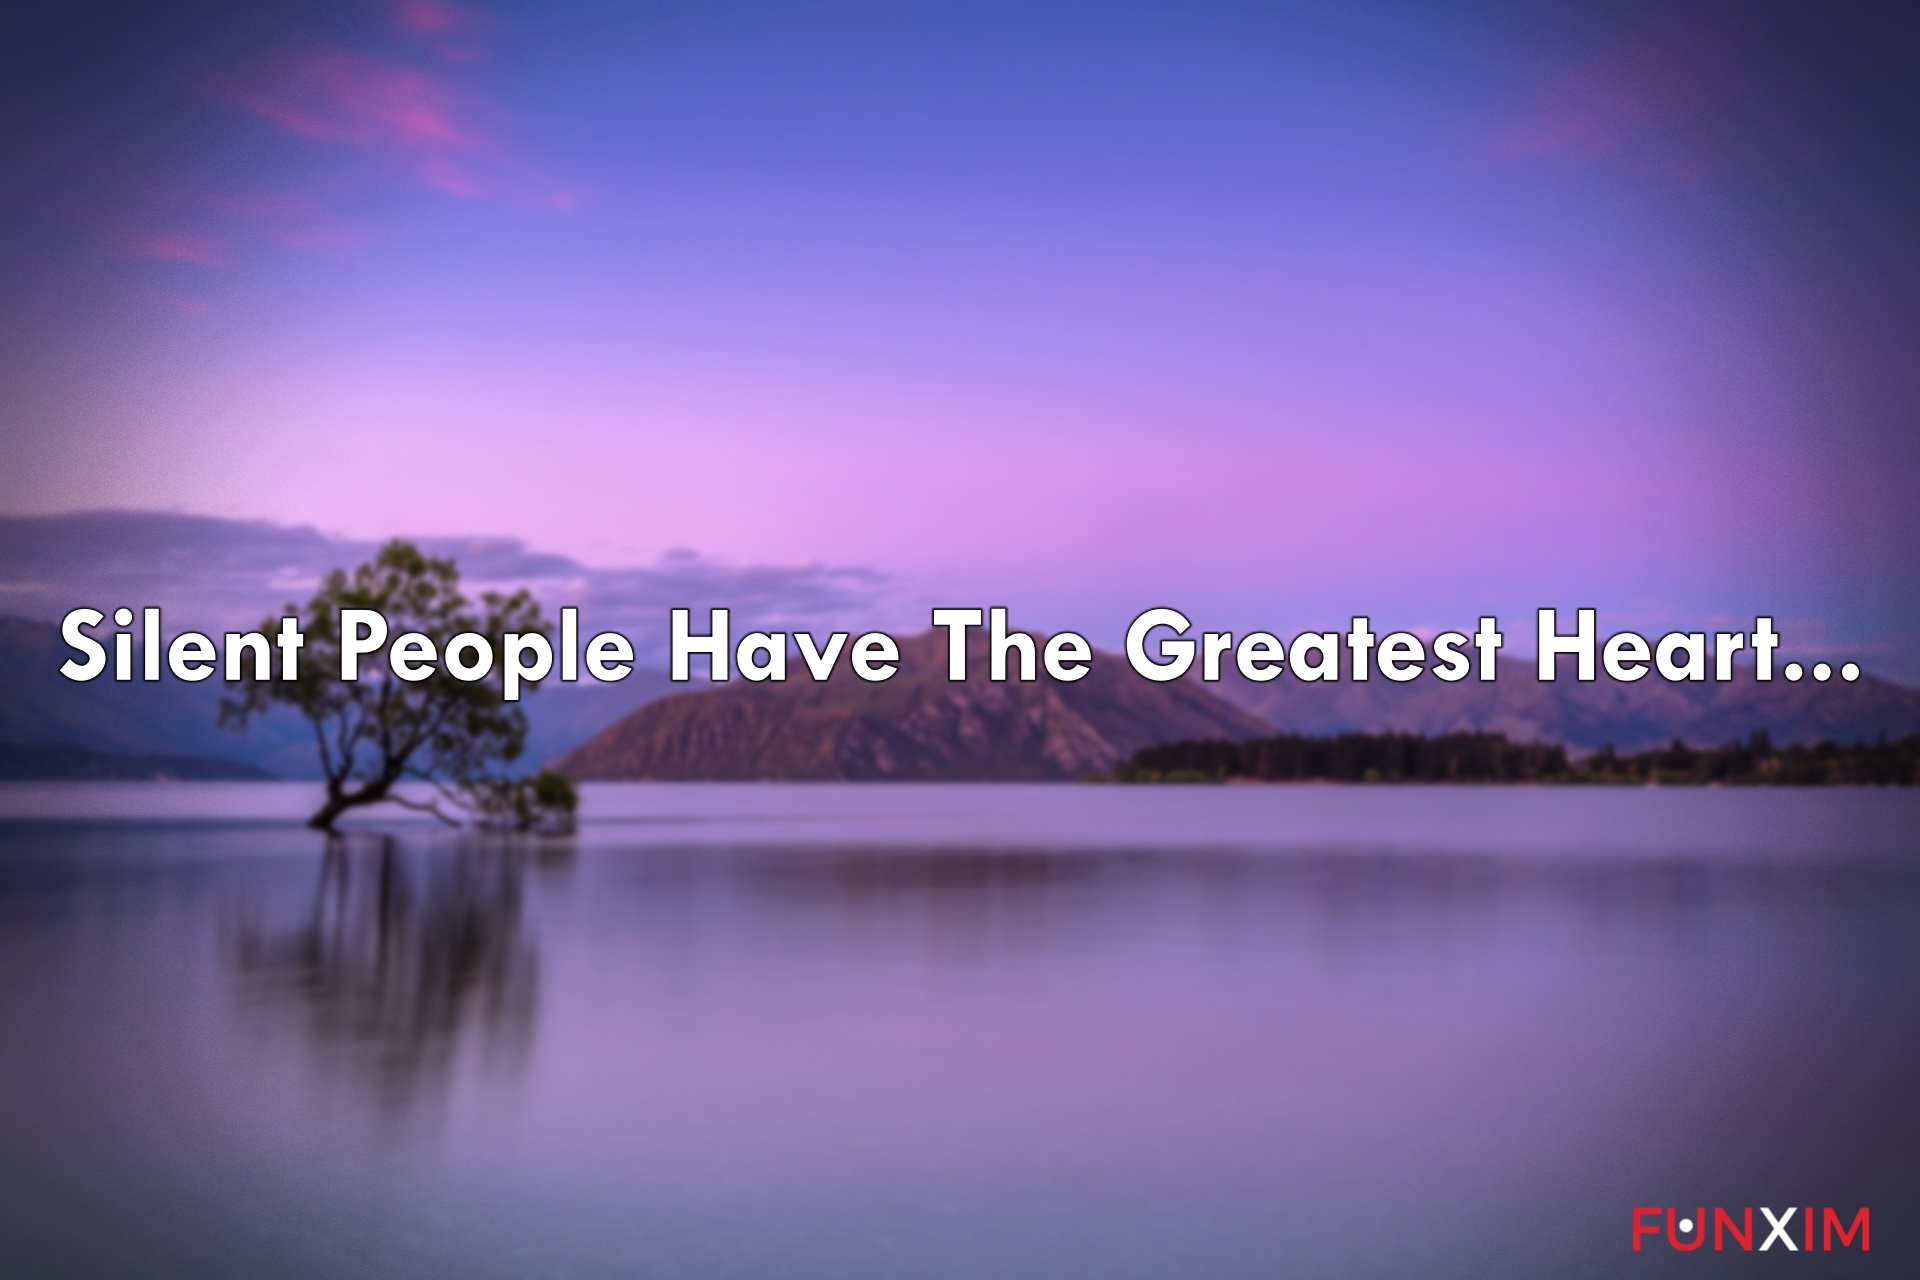 Silent people have the greatest heart.